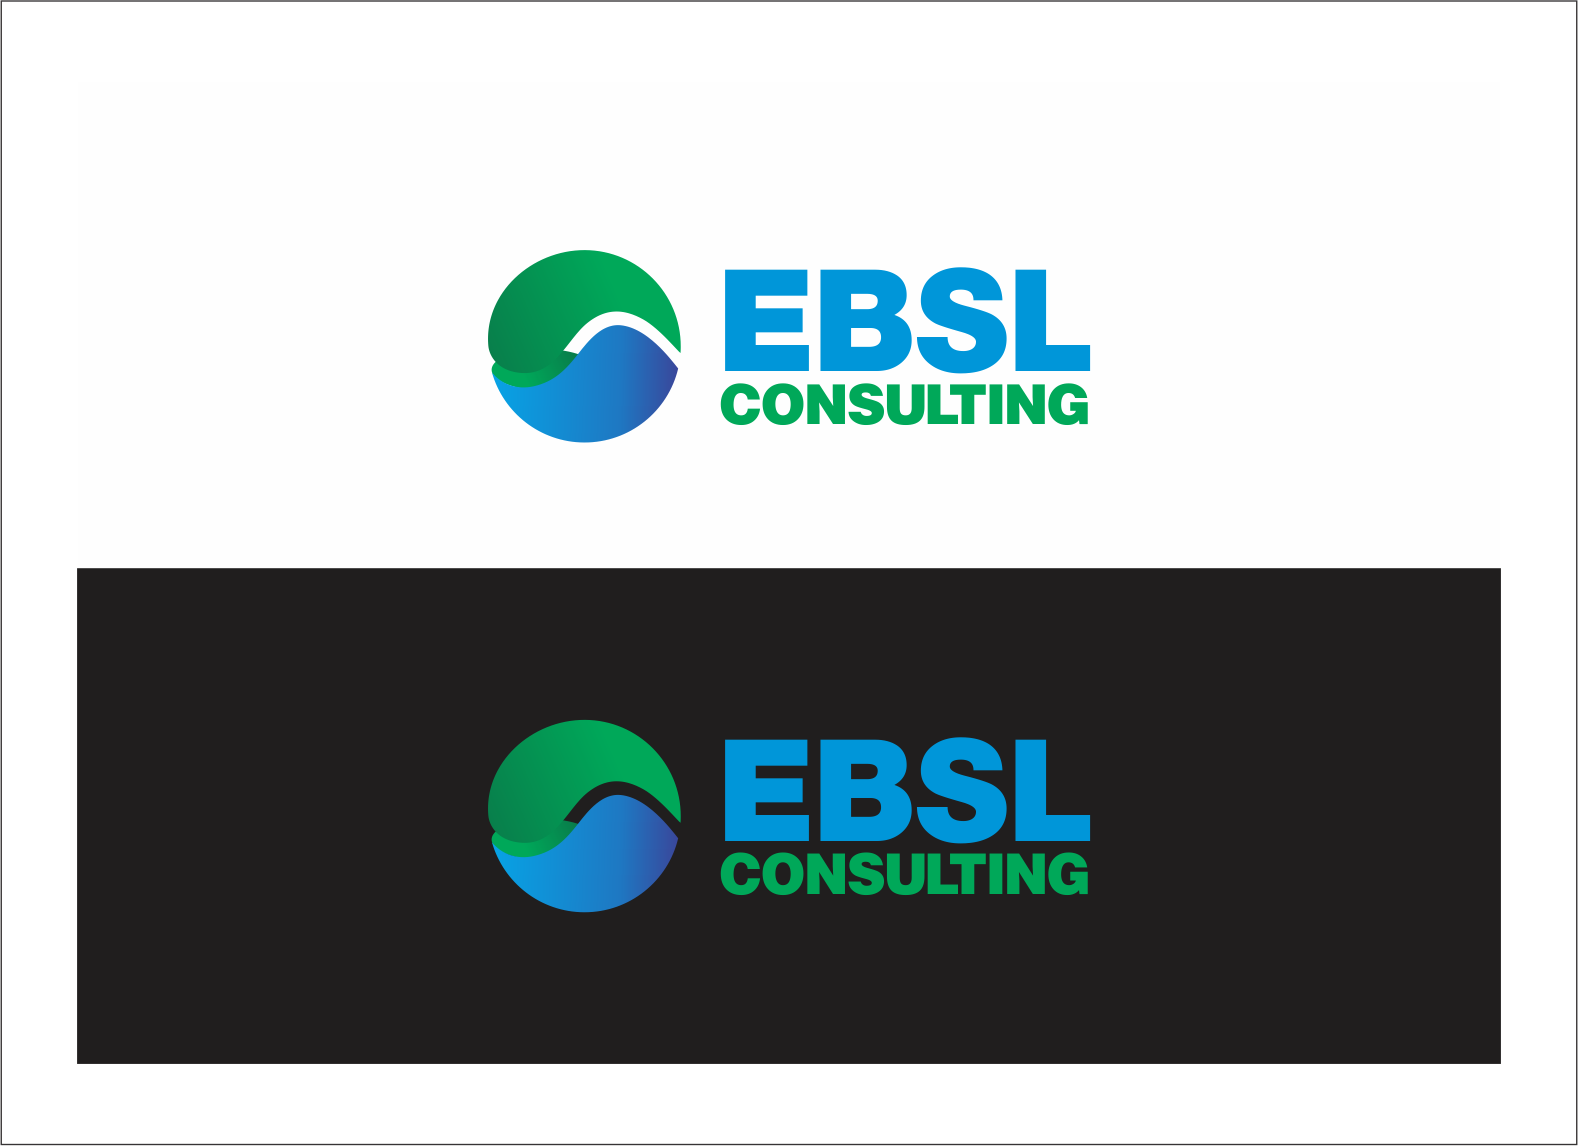 Logo Design by fathdesigner - Entry No. 57 in the Logo Design Contest EBSL Consulting Logo Design.